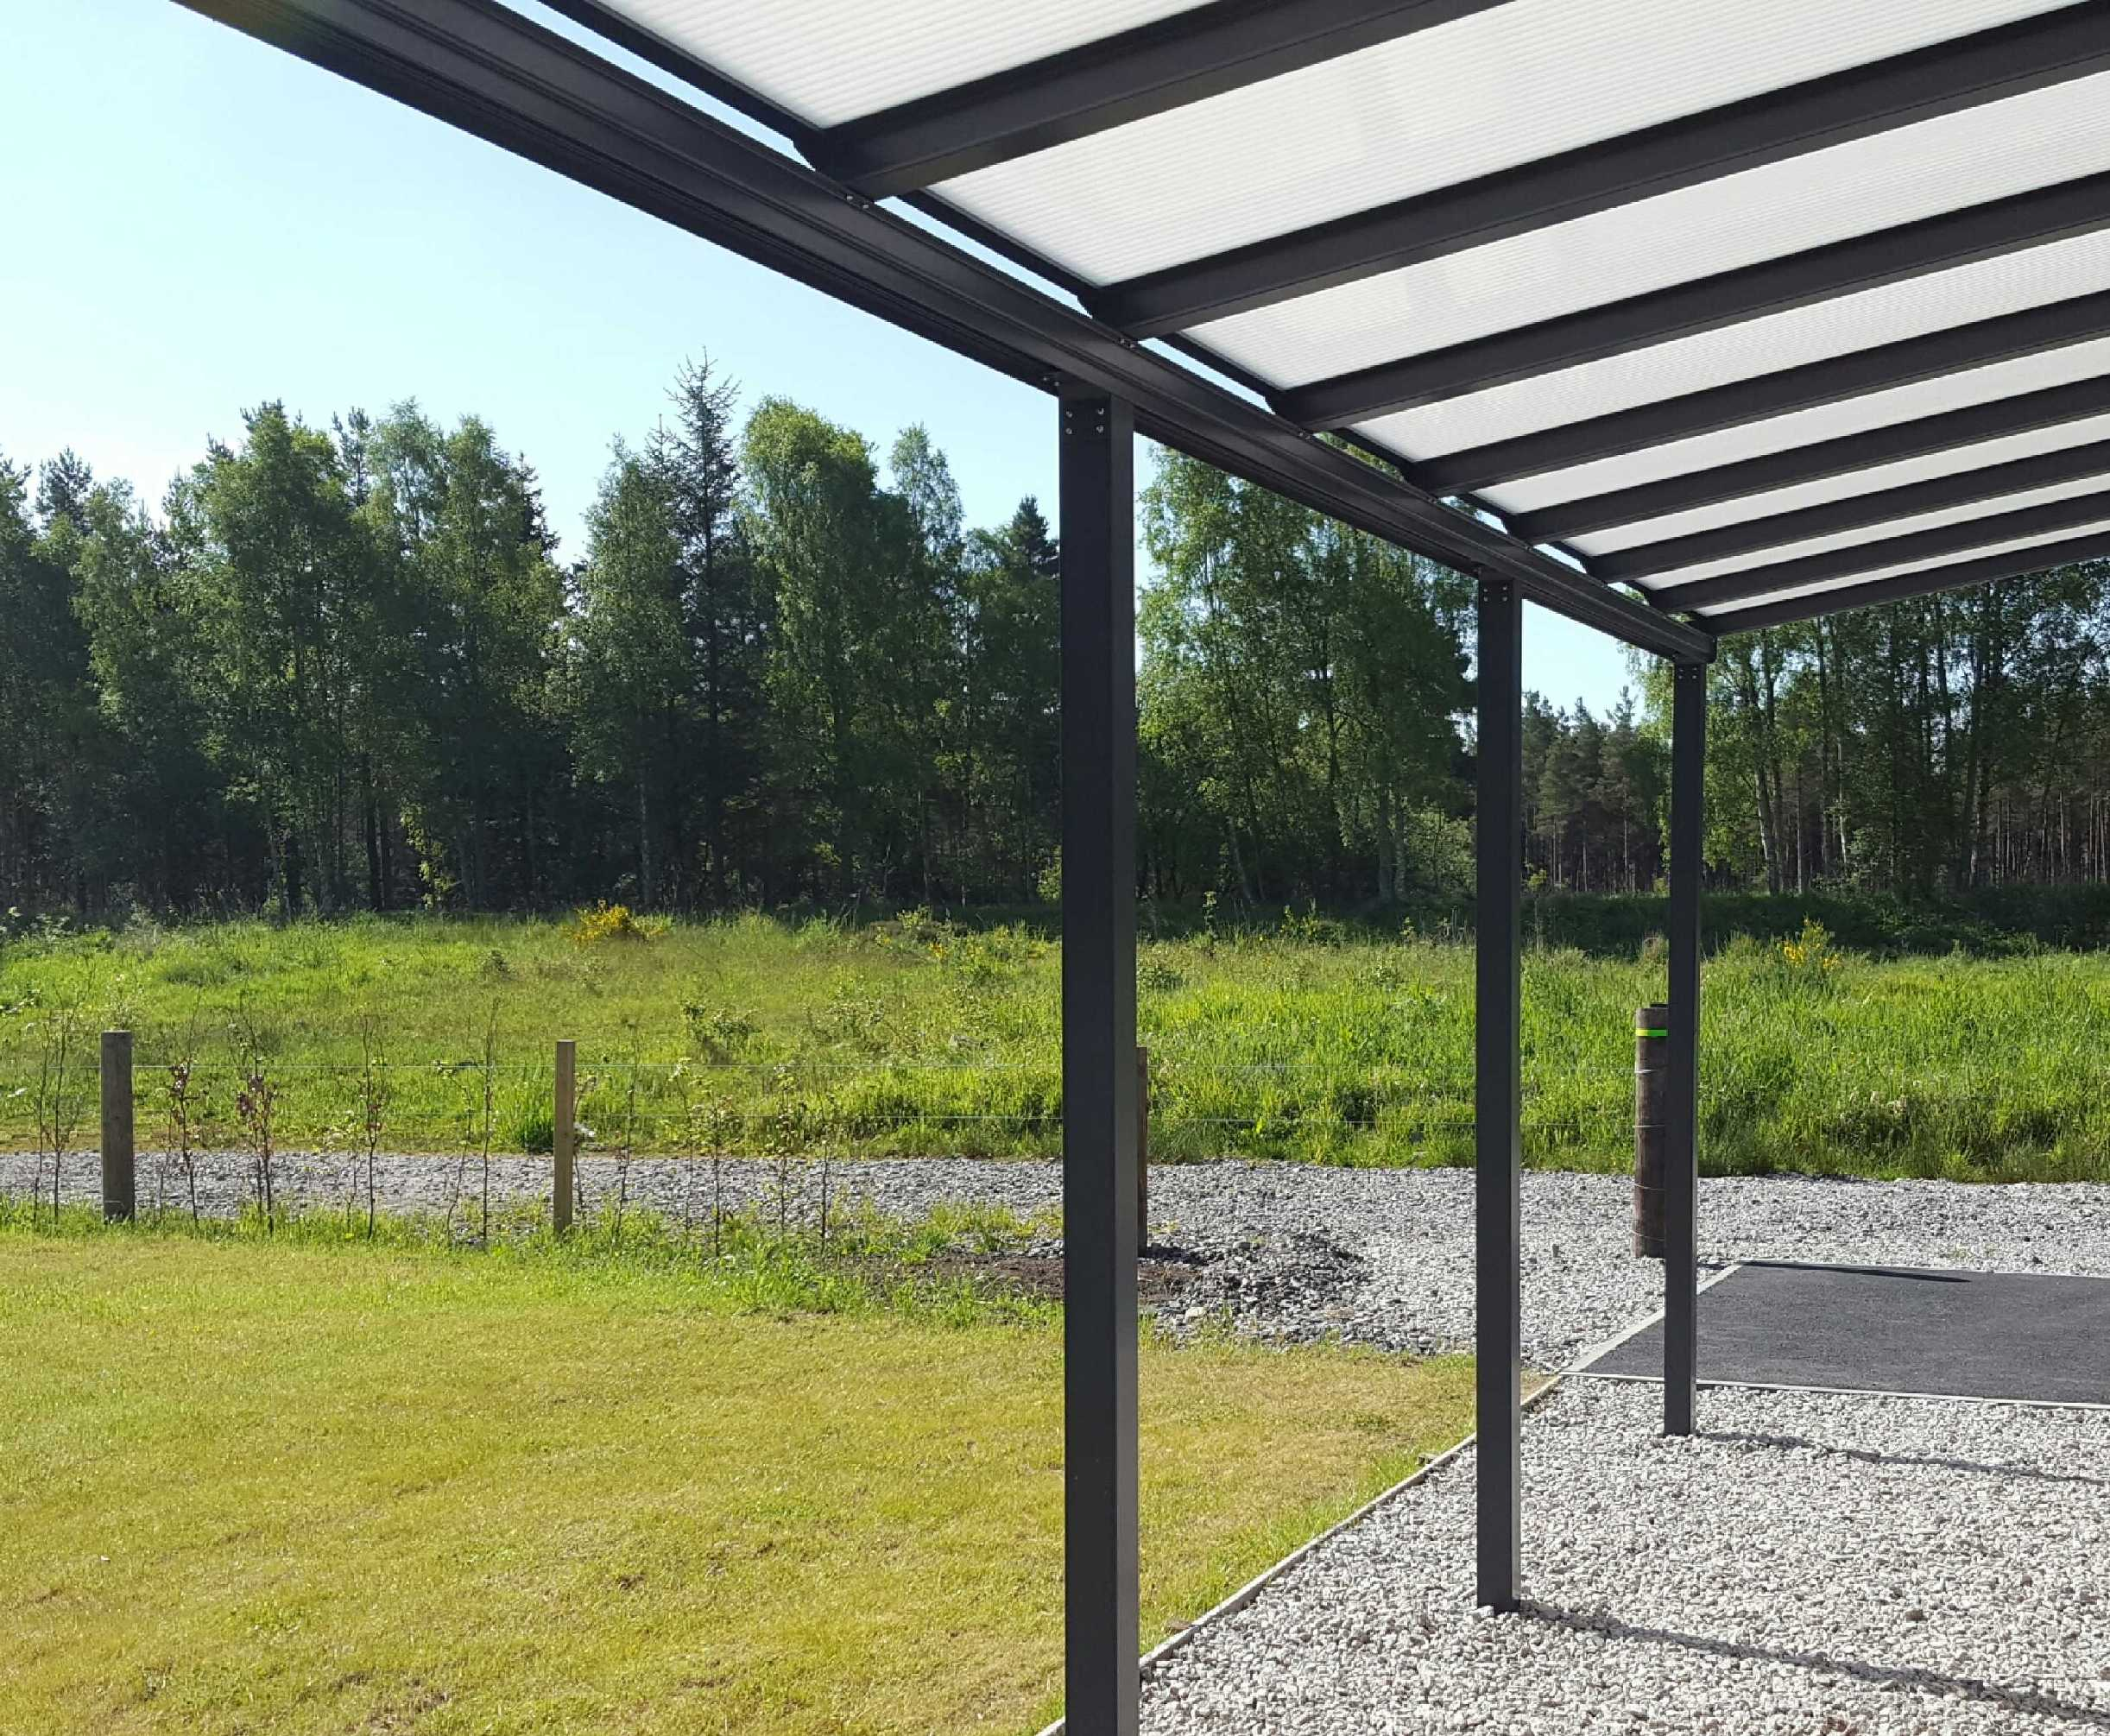 Omega Smart Lean-To Canopy, Anthracite Grey, 6mm Glass Clear Plate Polycarbonate Glazing - 2.1m (W) x 1.5m (P), (2) Supporting Posts